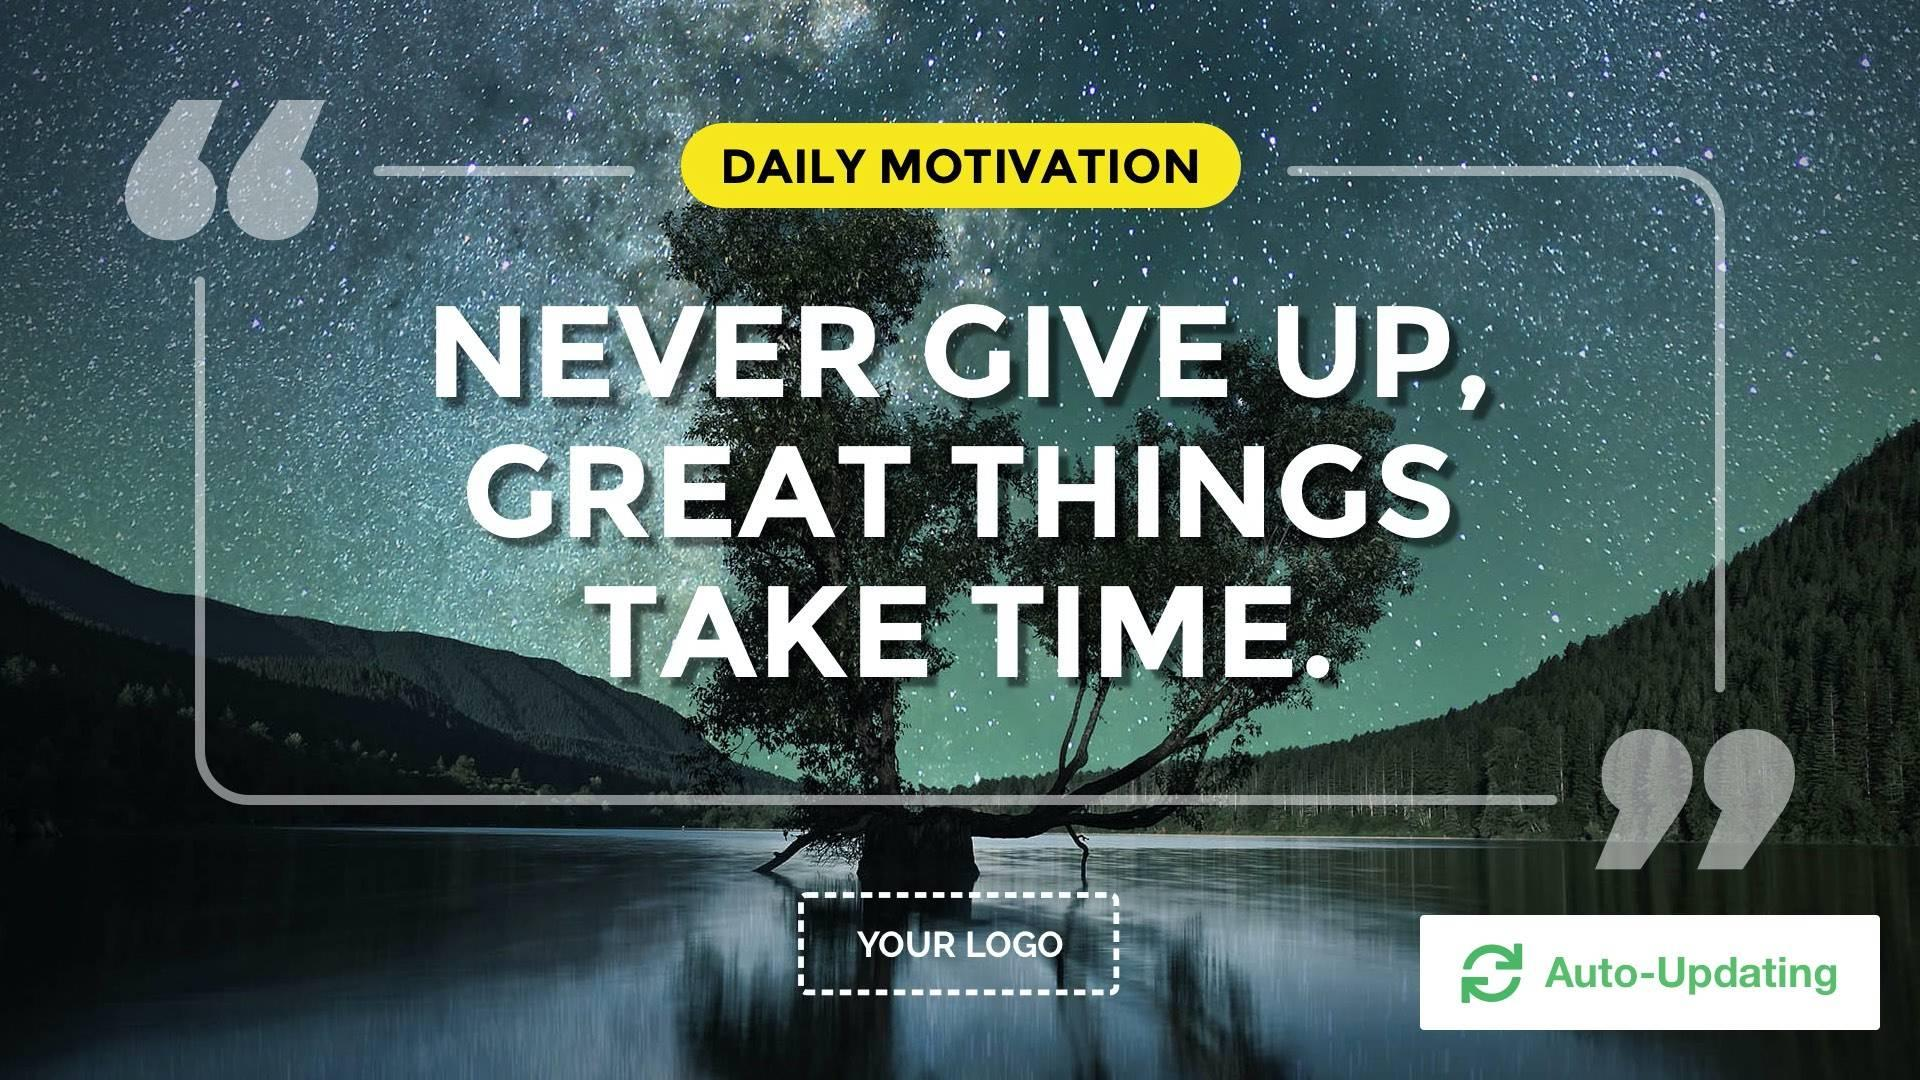 Daily Motivation Digital Signage Template